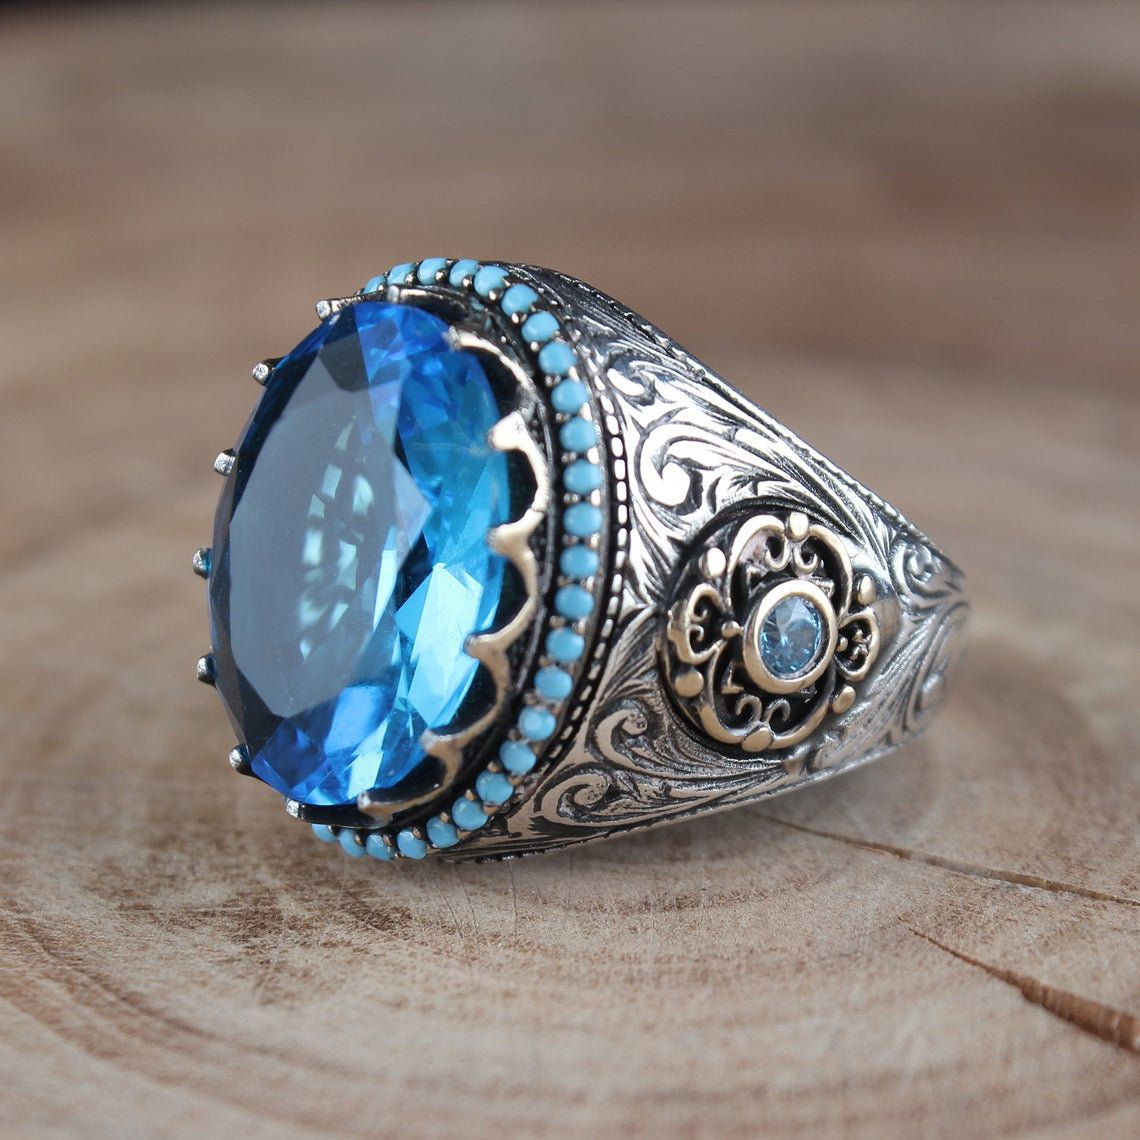 Handmade Silver Aquamarine Men Rings Ring Real sterling silver 925 art design jewelry Ups free express shipping. Unique men ring